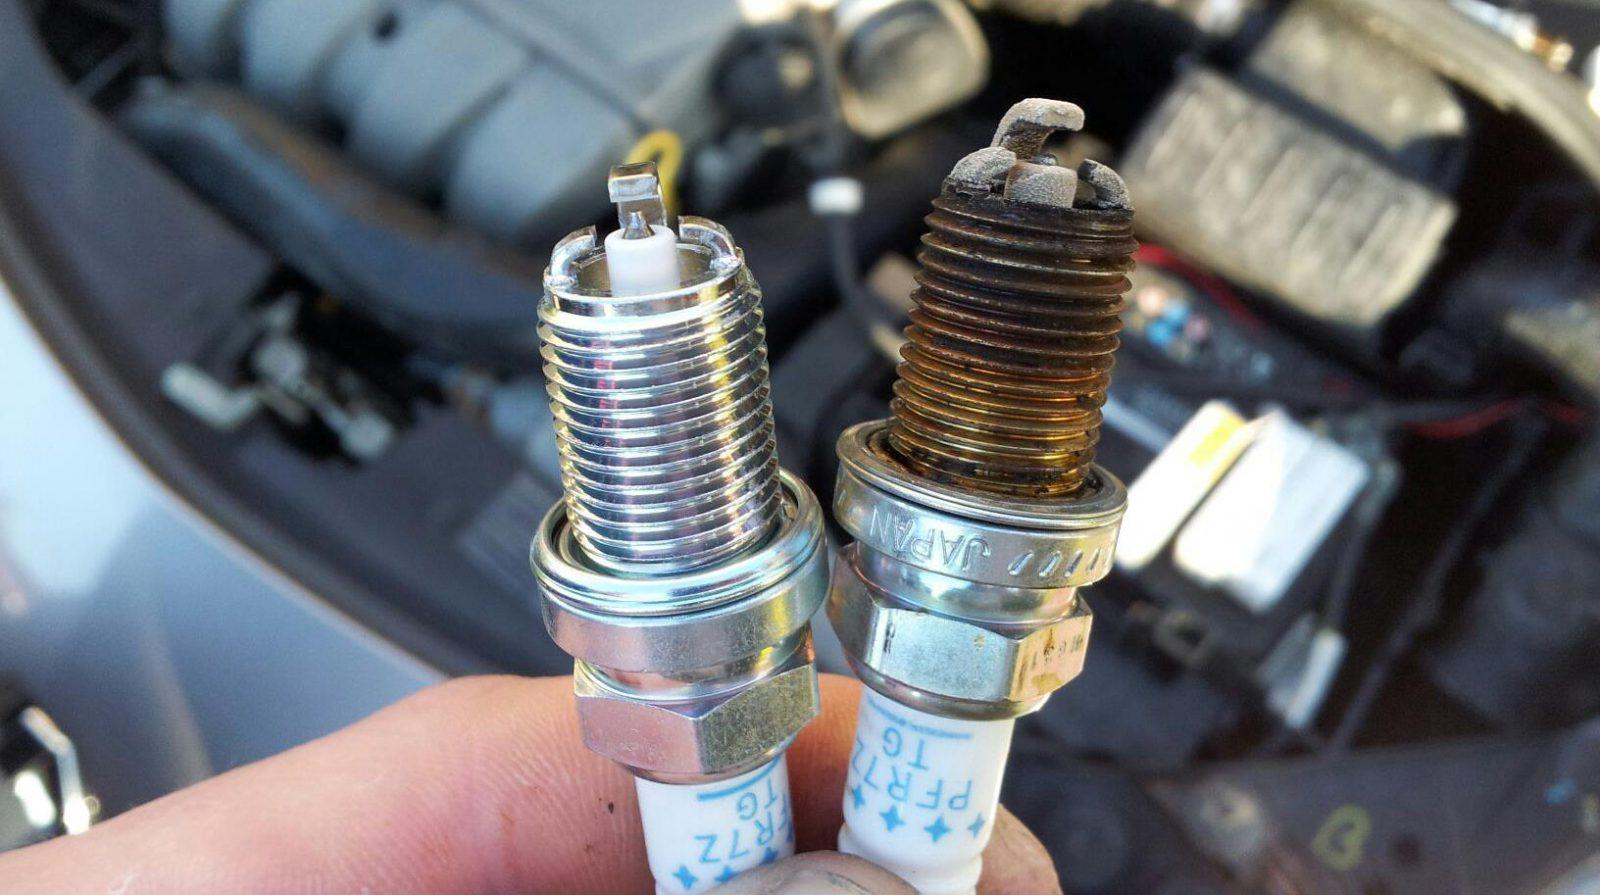 Spark Plug Ejection Ford Problems Tagsspark Problemsford Thread Repair Kits Timesertspark Plugs May Be Difficult To Remove F150 Enginenoise From Rear